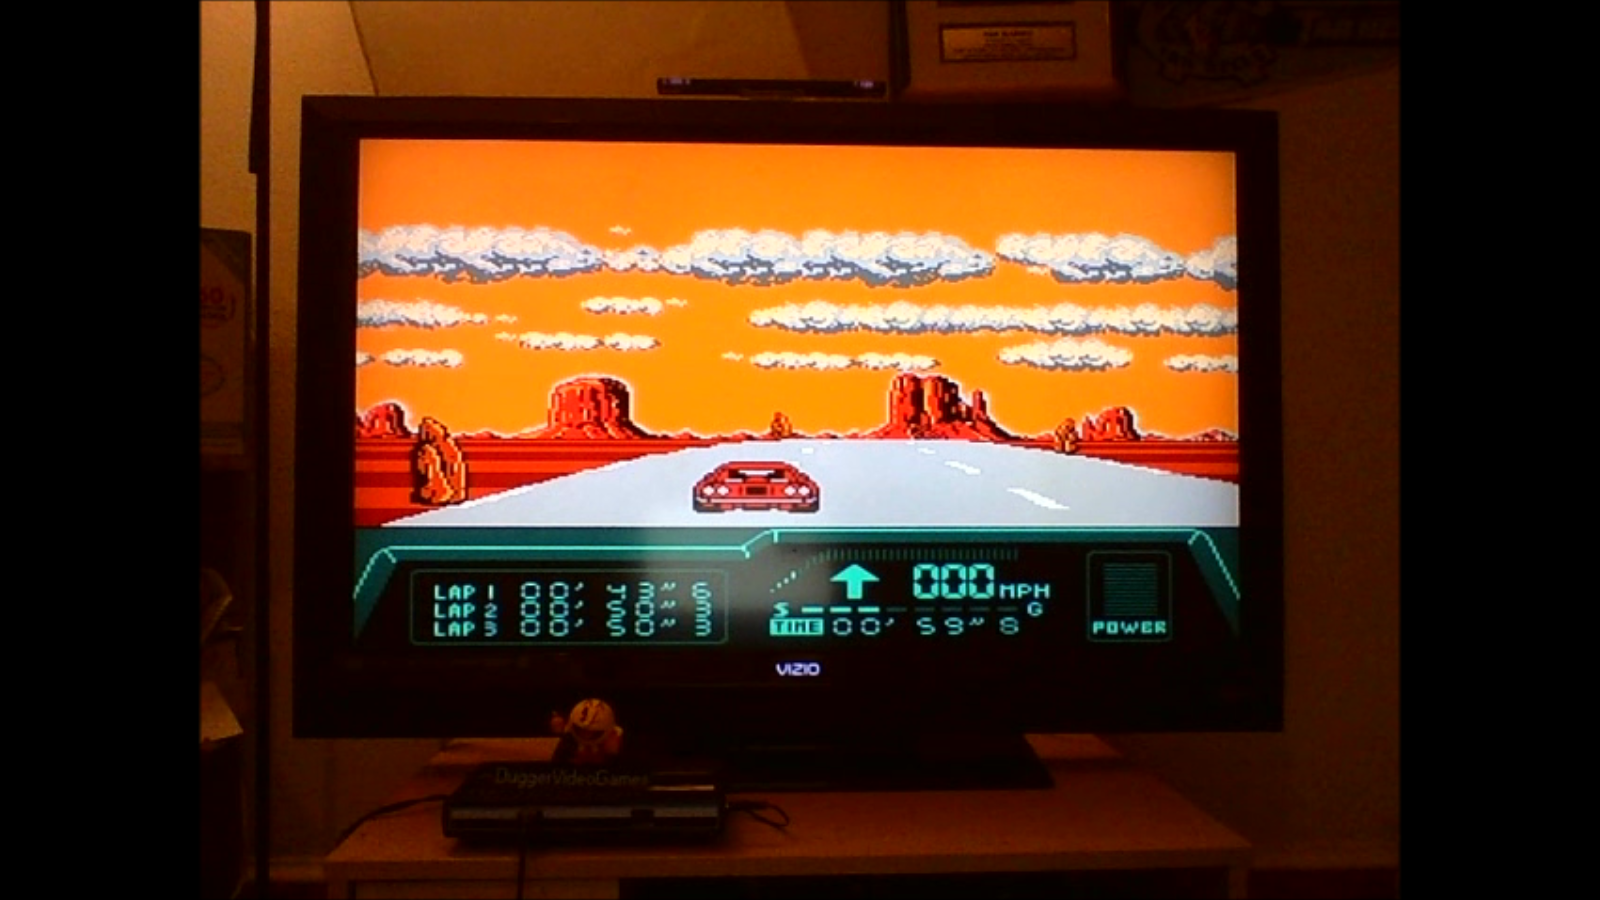 DuggerVideoGames: Rad Racer 2: Stage 4: Monument Valley [Fastest Lap] (NES/Famicom Emulated) 0:00:43.6 points on 2016-08-24 00:59:49